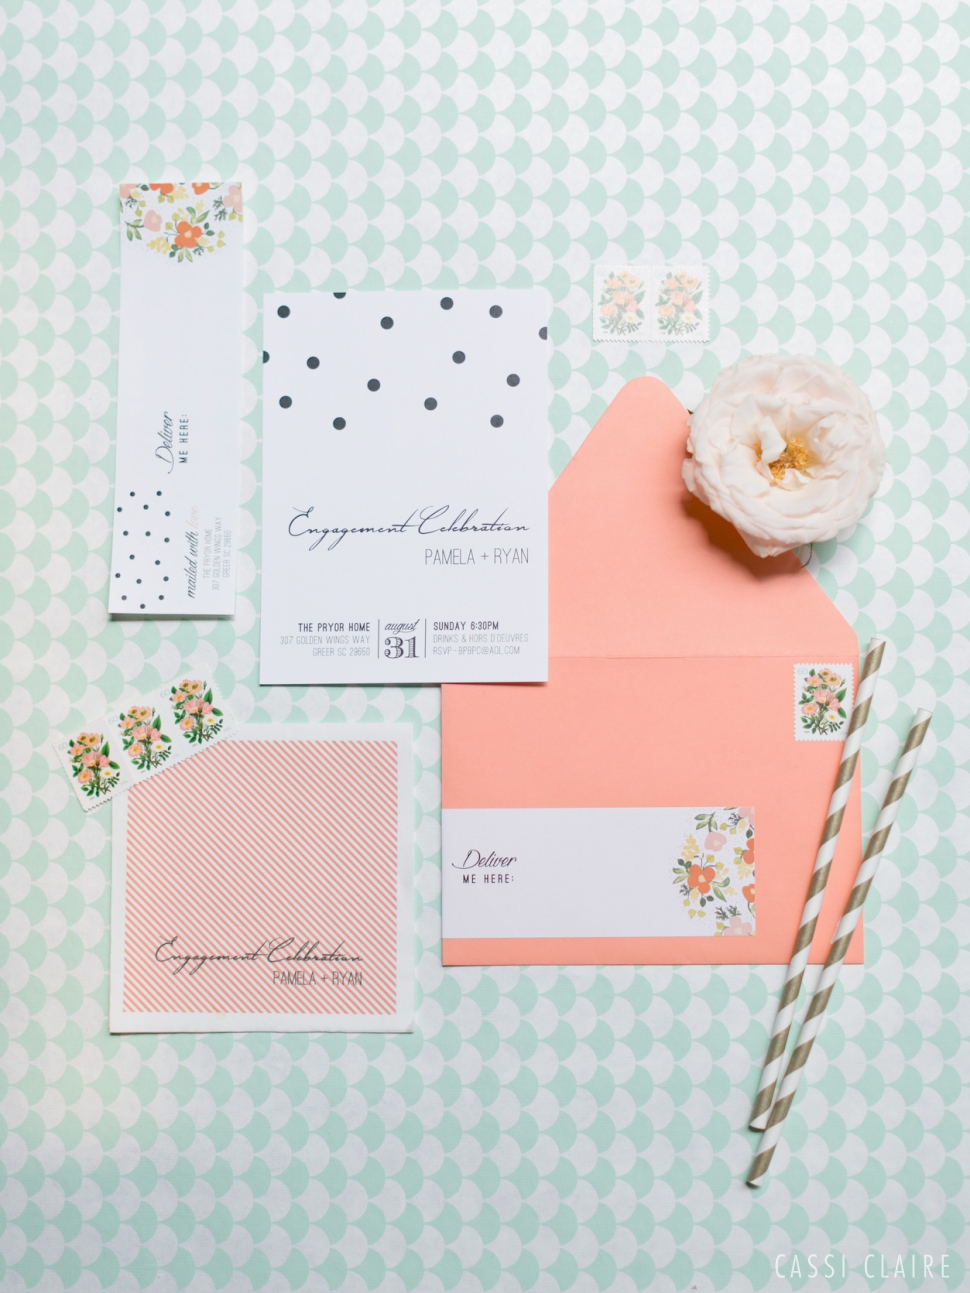 The-Foundry-LIC-Wedding_CassiClaire_04.jpg